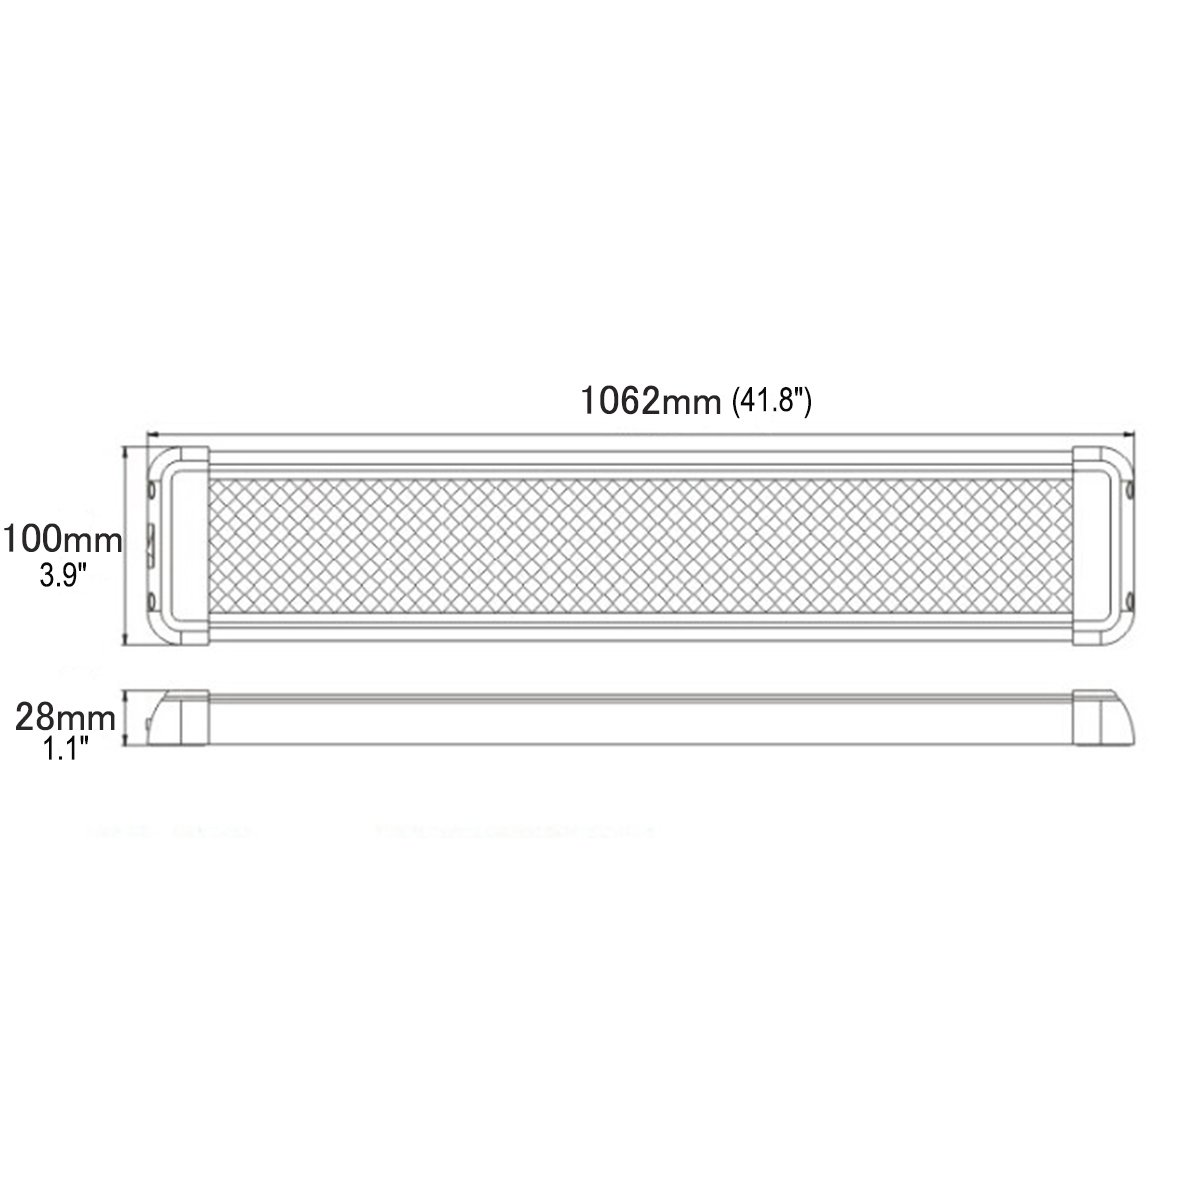 lightronic 41.8 Inches 60W LED Interior Dome Light Fixture Fit for RV, UTV and Boats by lightronic (Image #5)